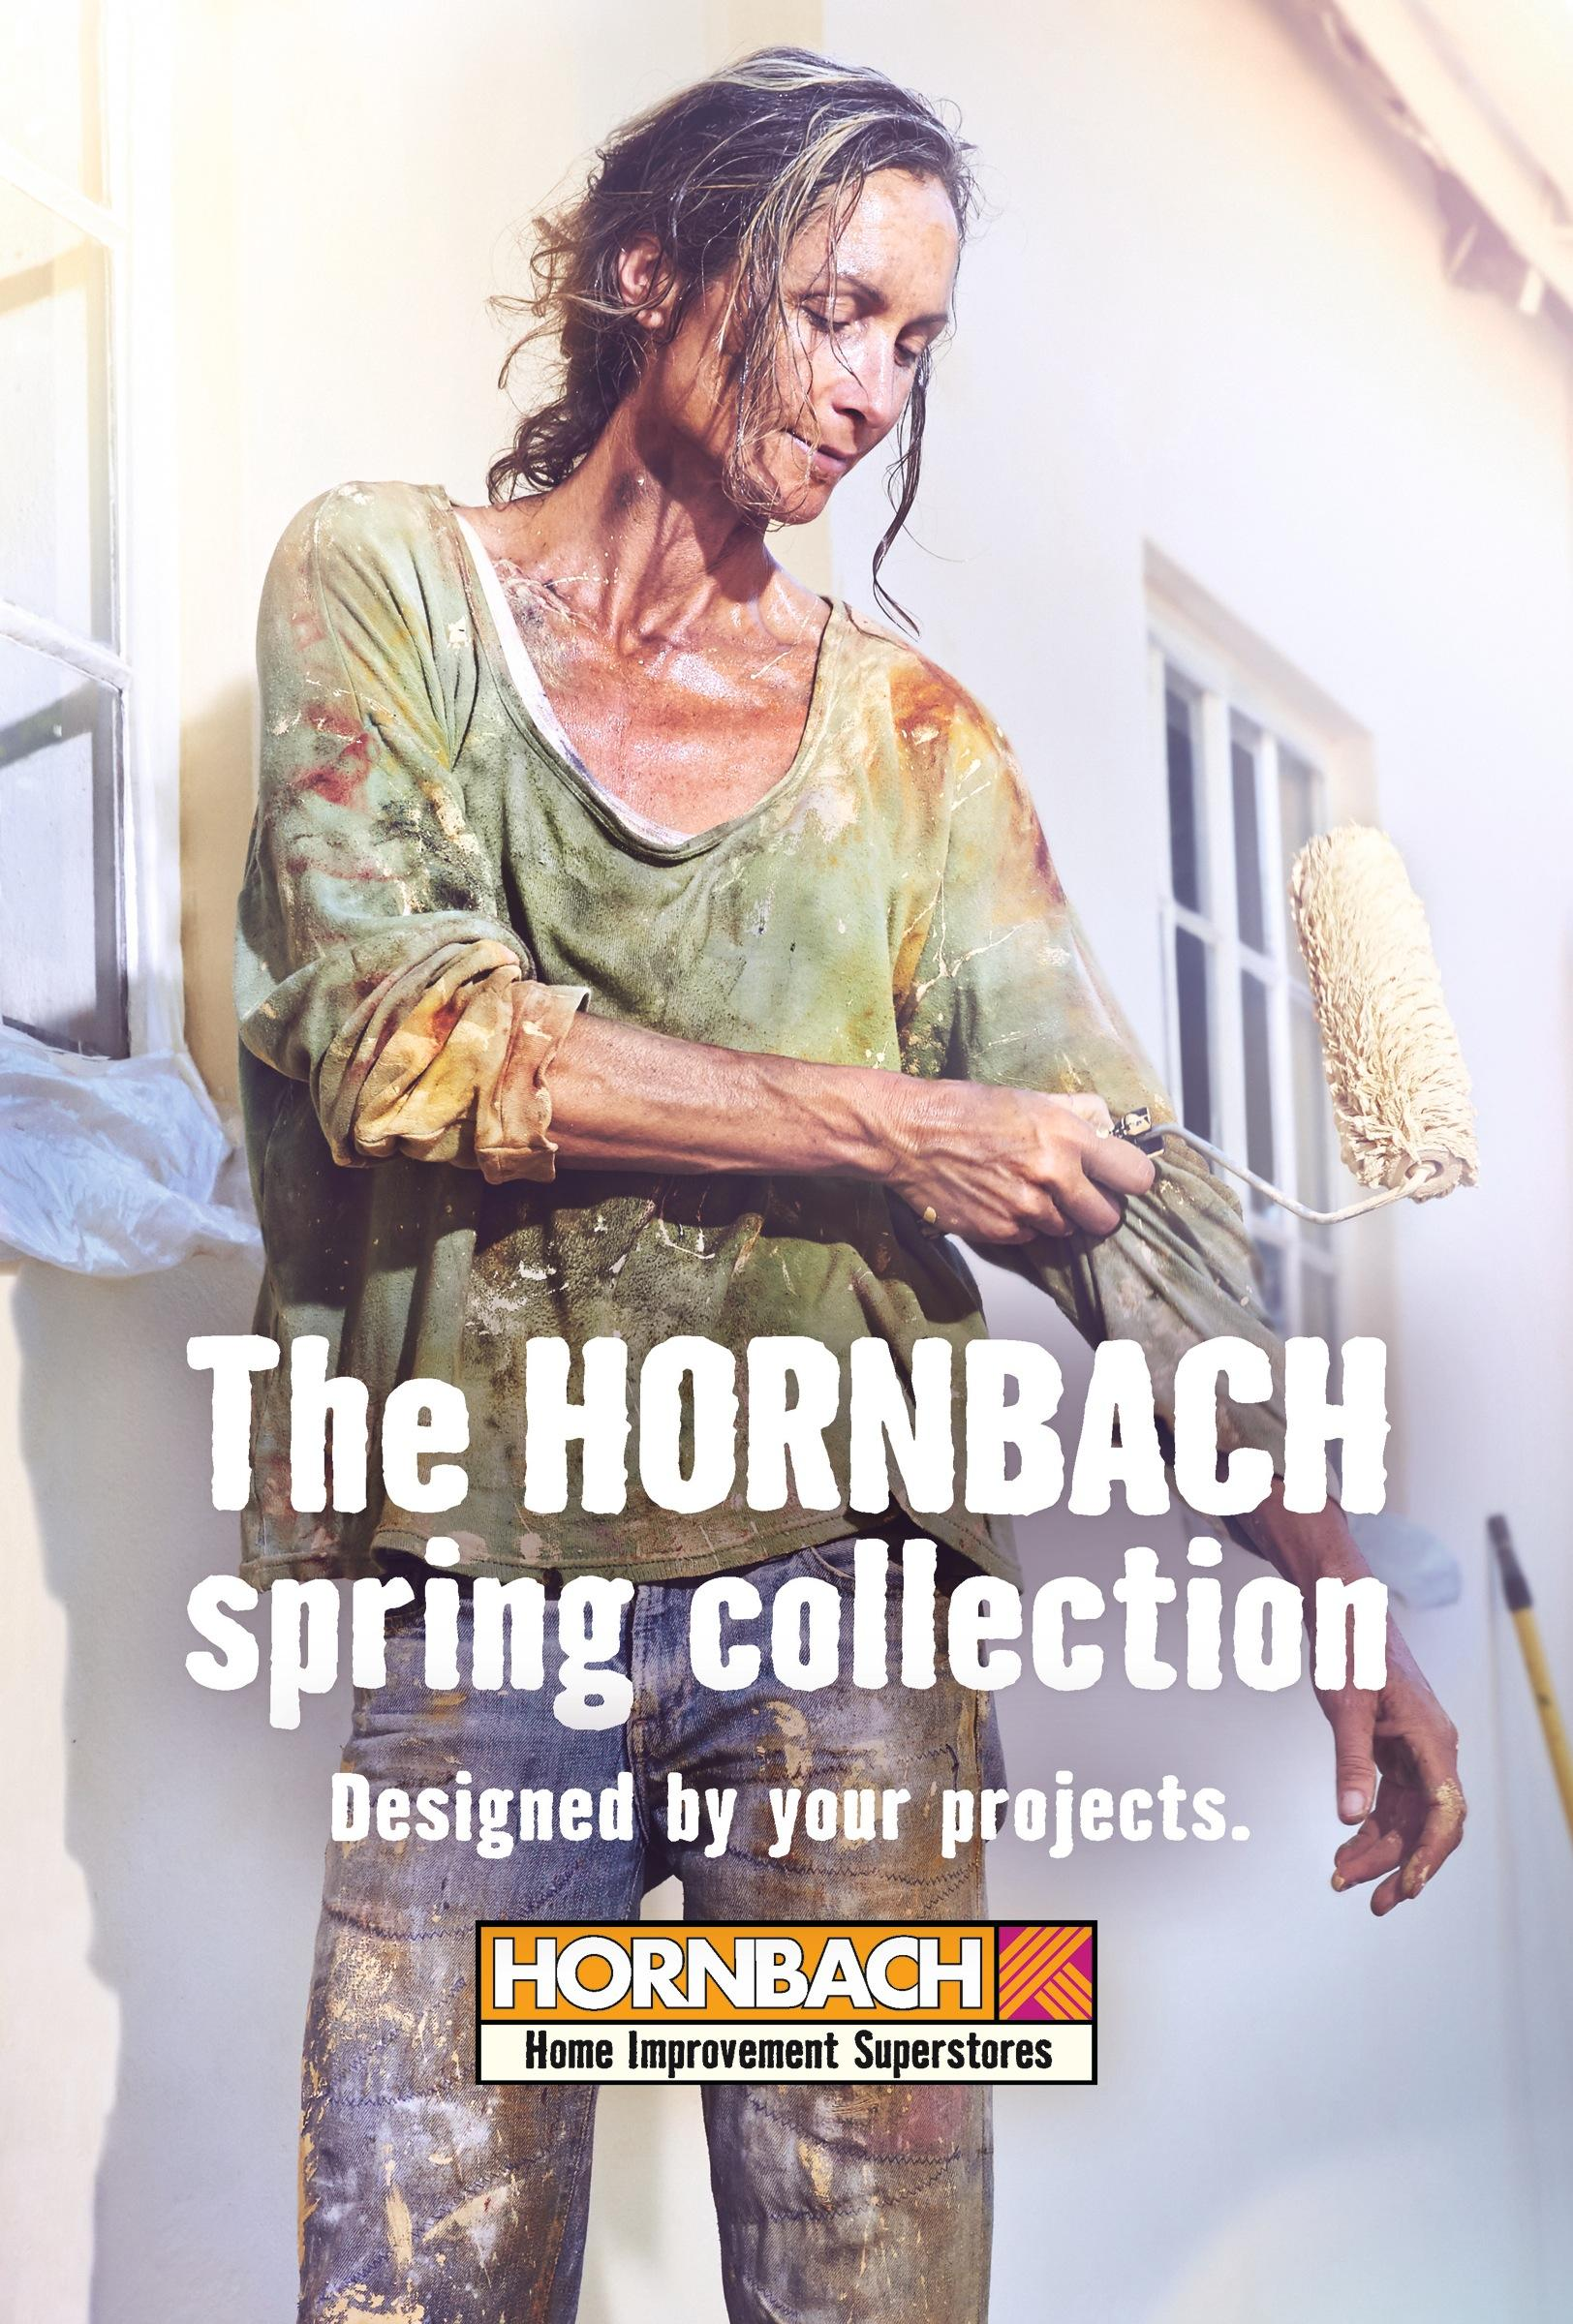 Hornbach Print Ad -  Designed by your projects, 2